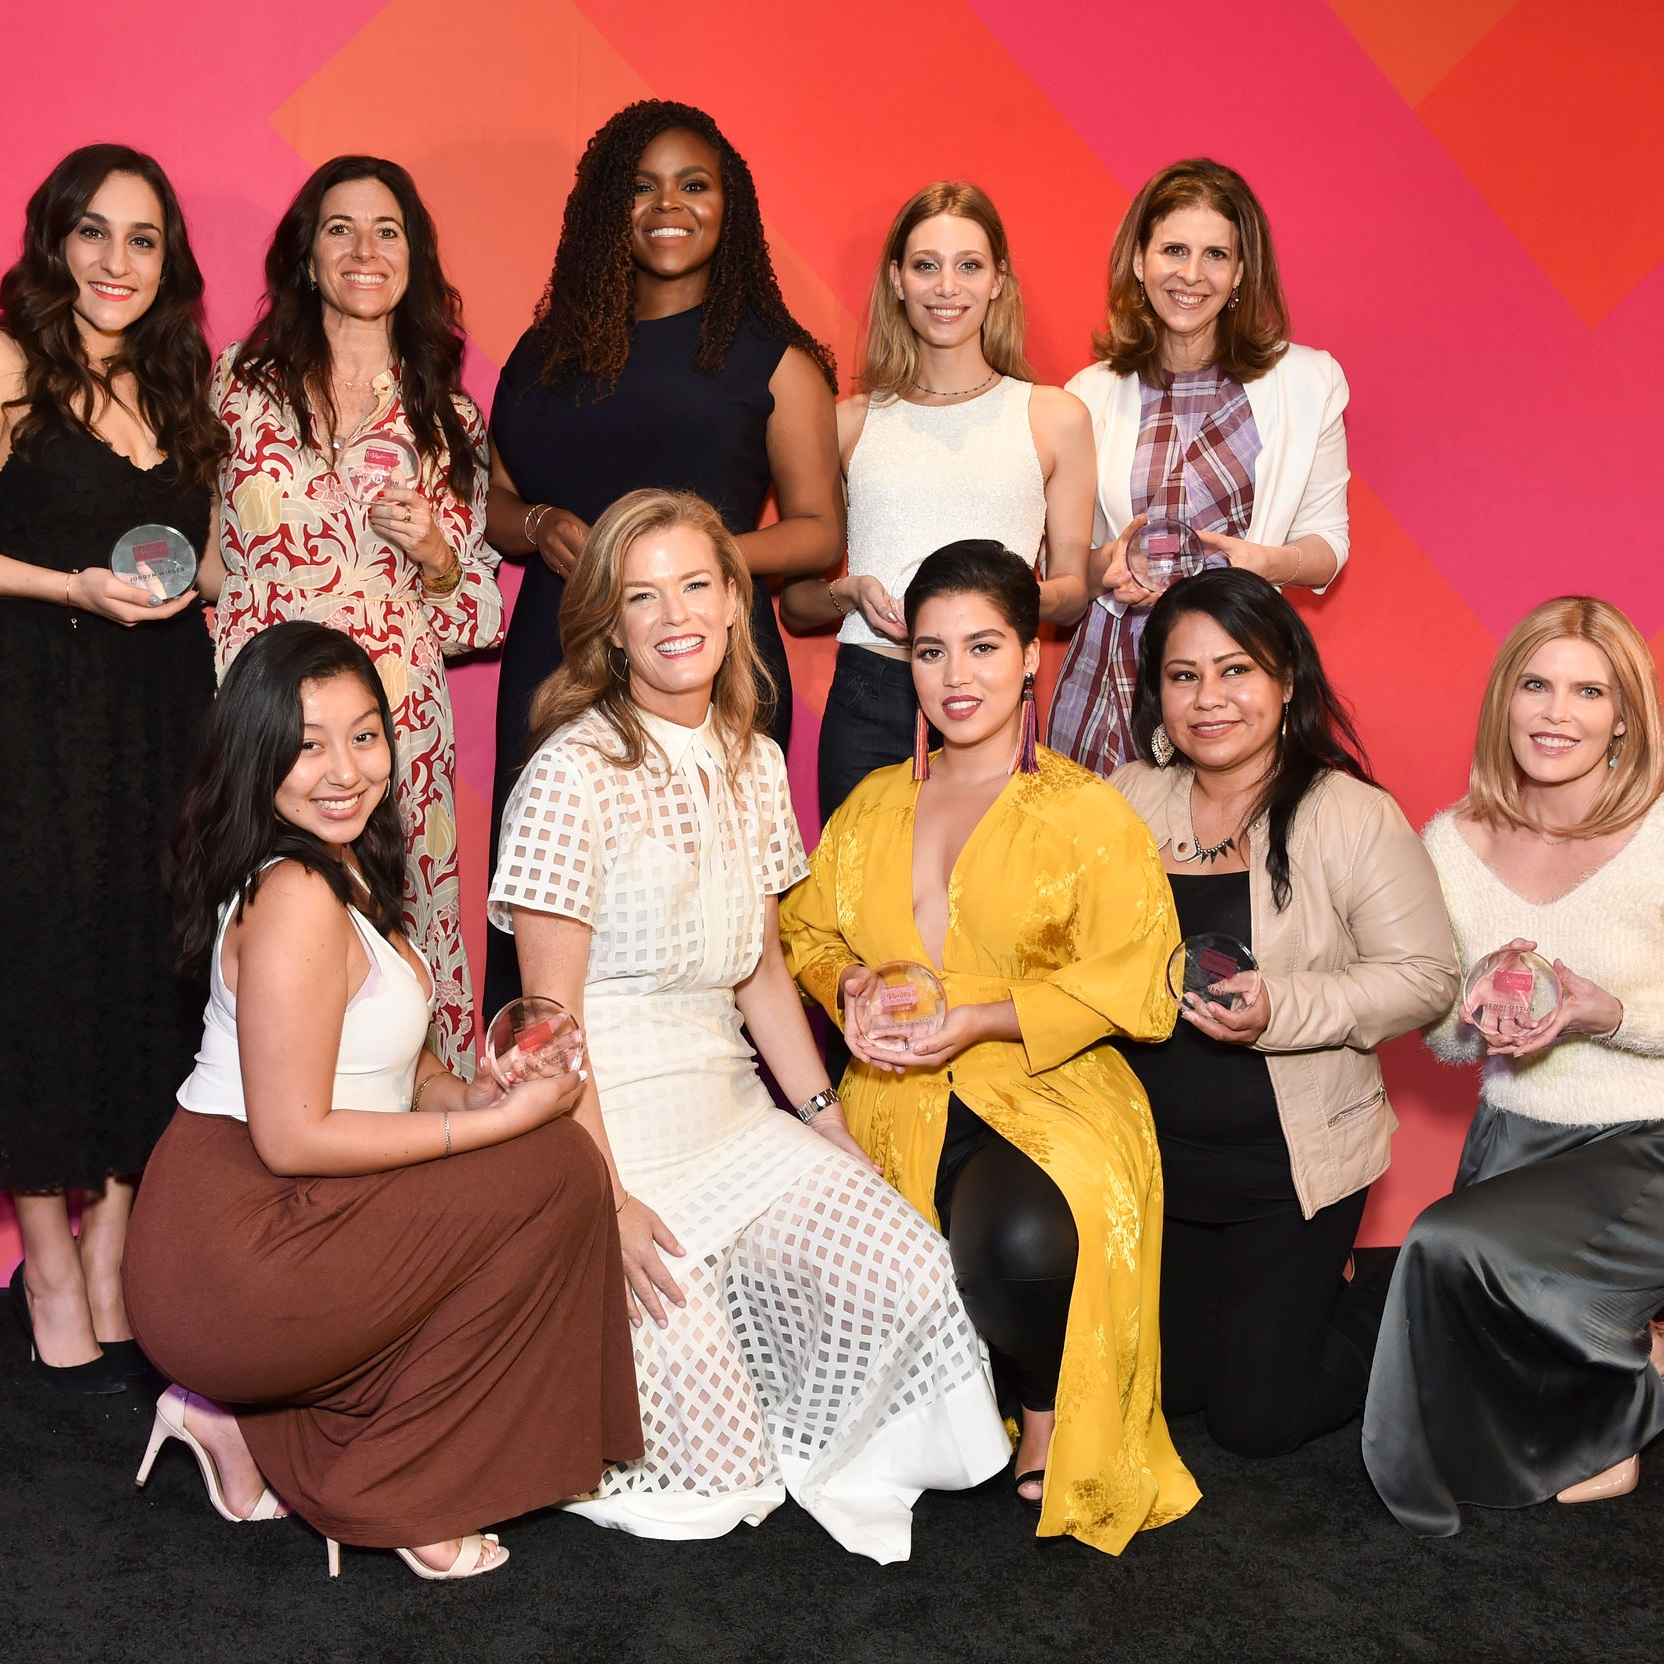 """Article: """"The #BlogHerHealth19 Voices of the Year Honorees Are Literally Changing the World"""" - SHE MEDIA"""